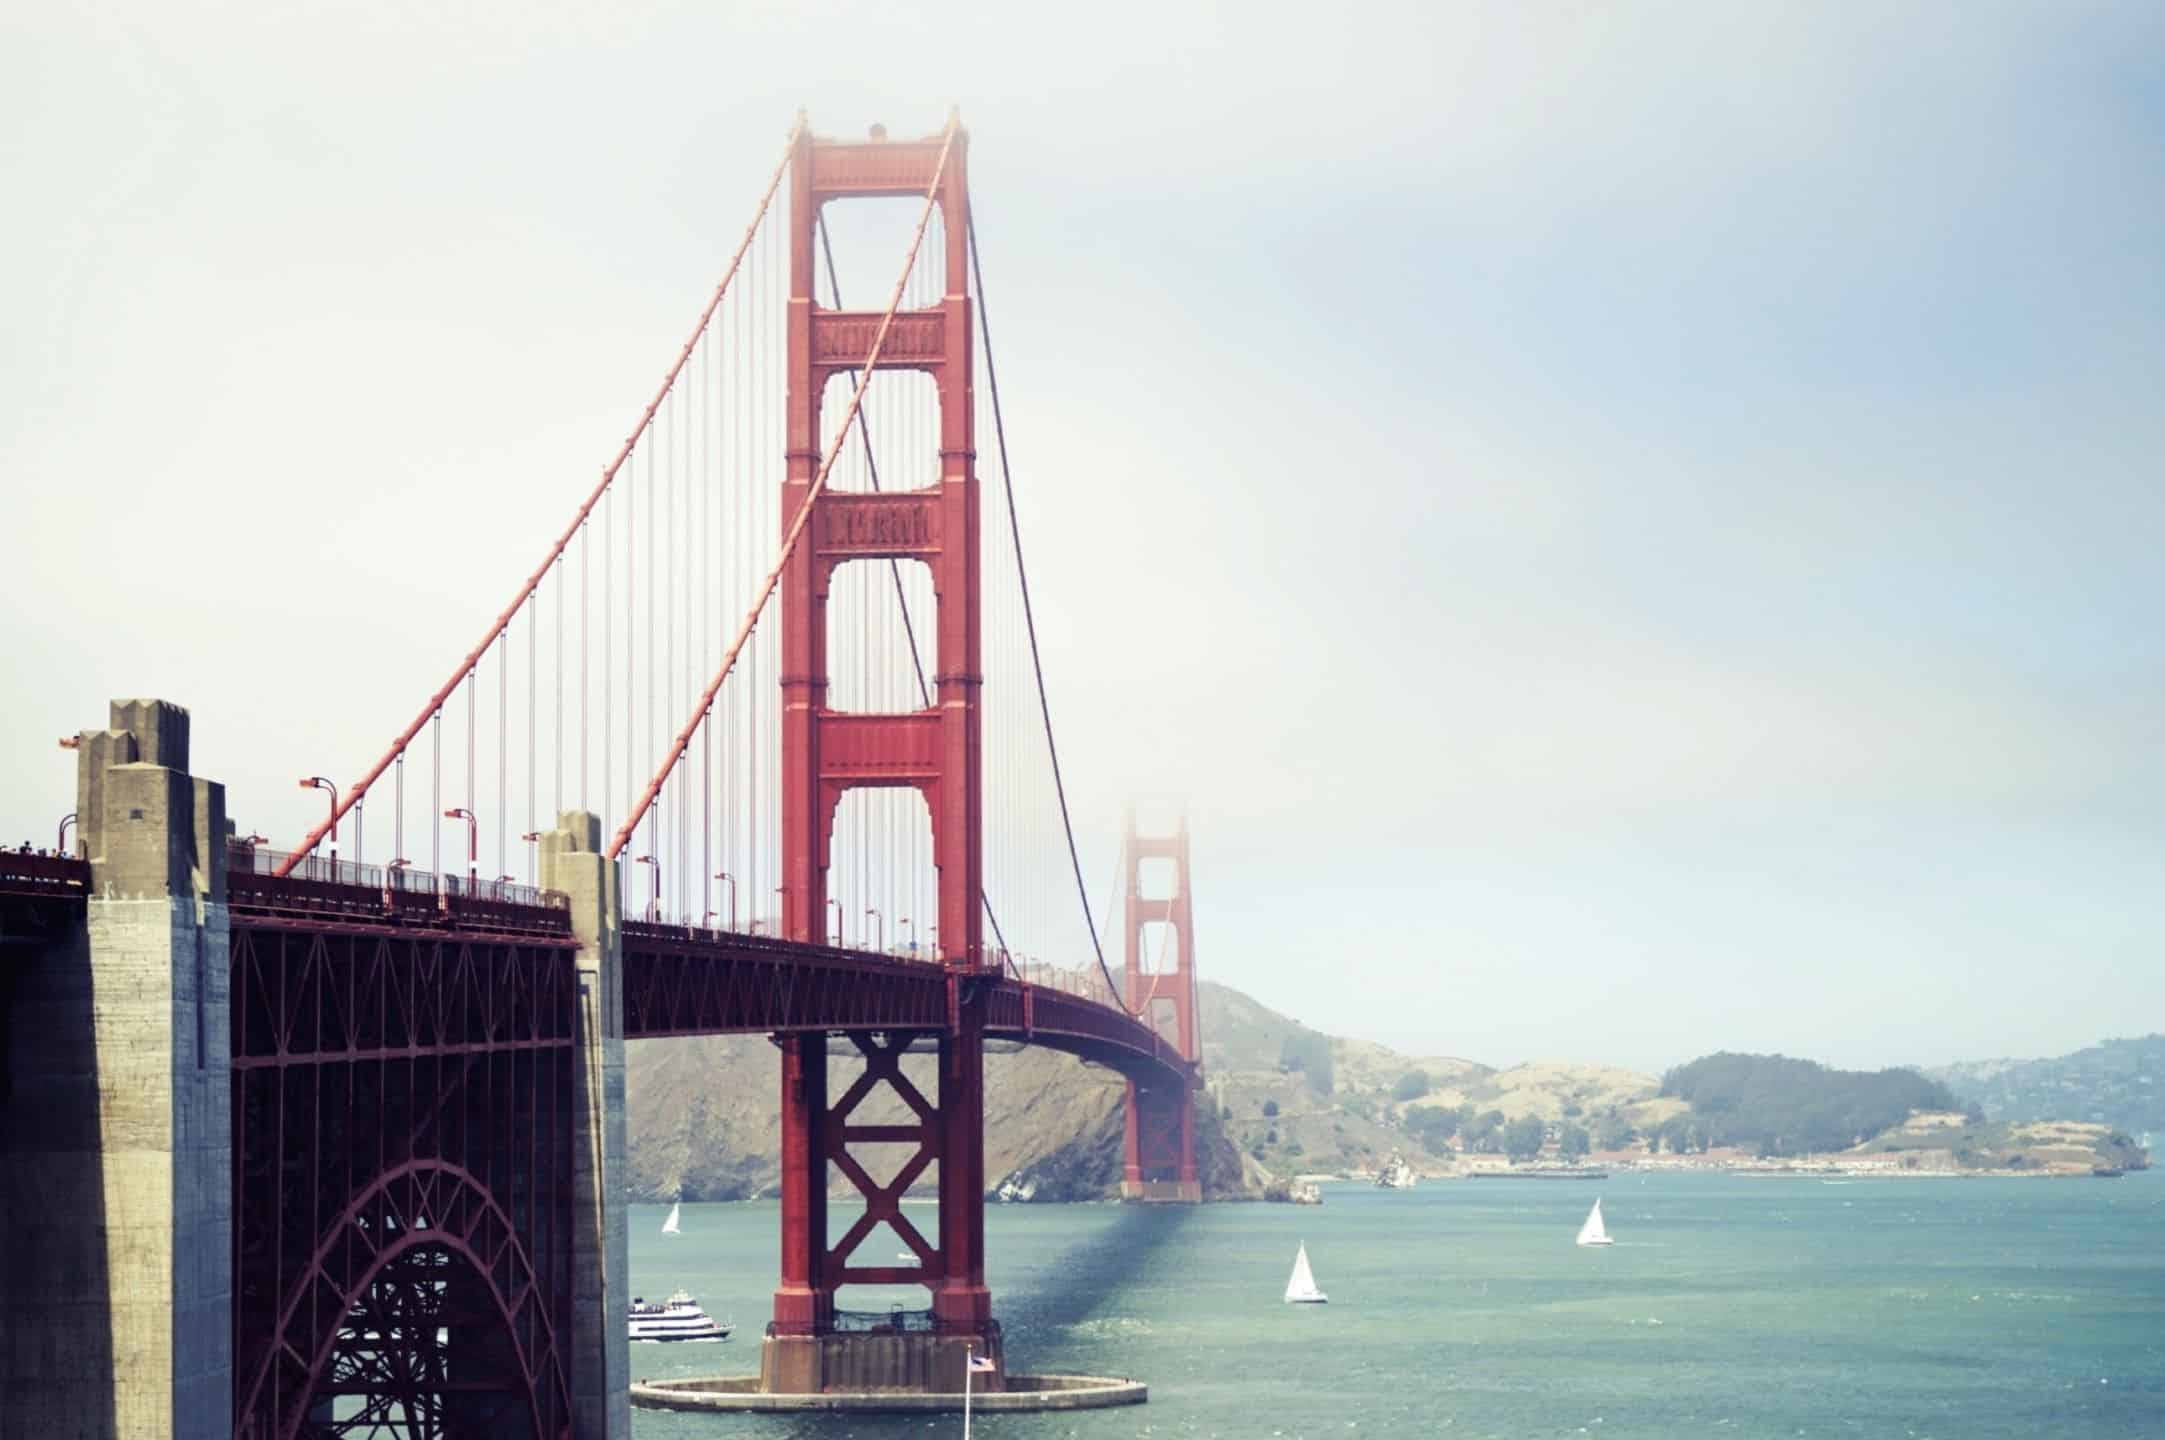 A Sneak Peak of Top Talks You Can Look Forward to at Accelerate San Francisco